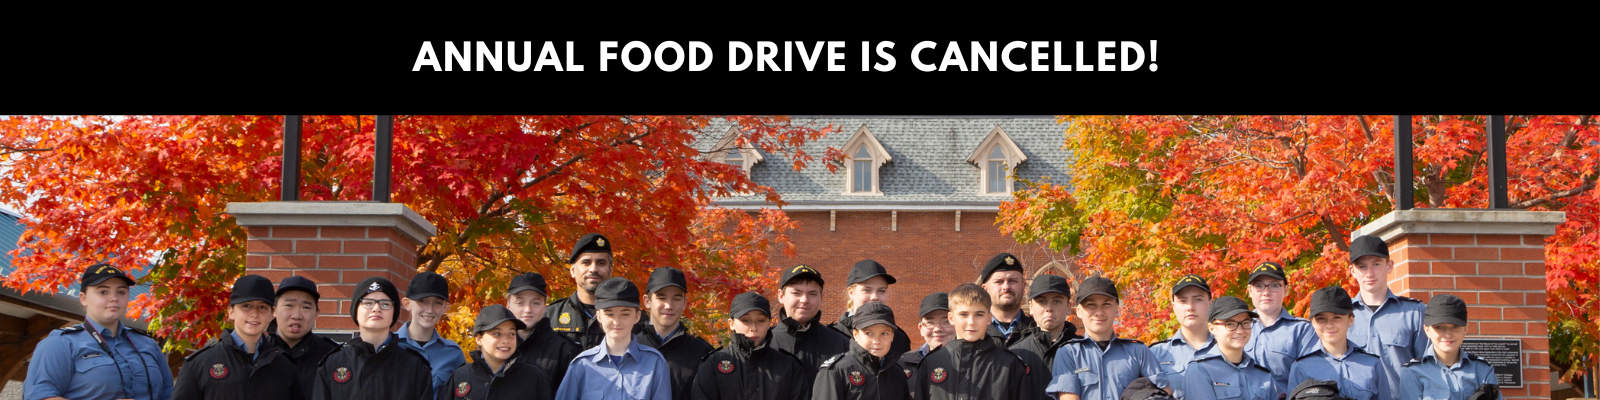 Annual City Wide Food Drive is Cancelled!